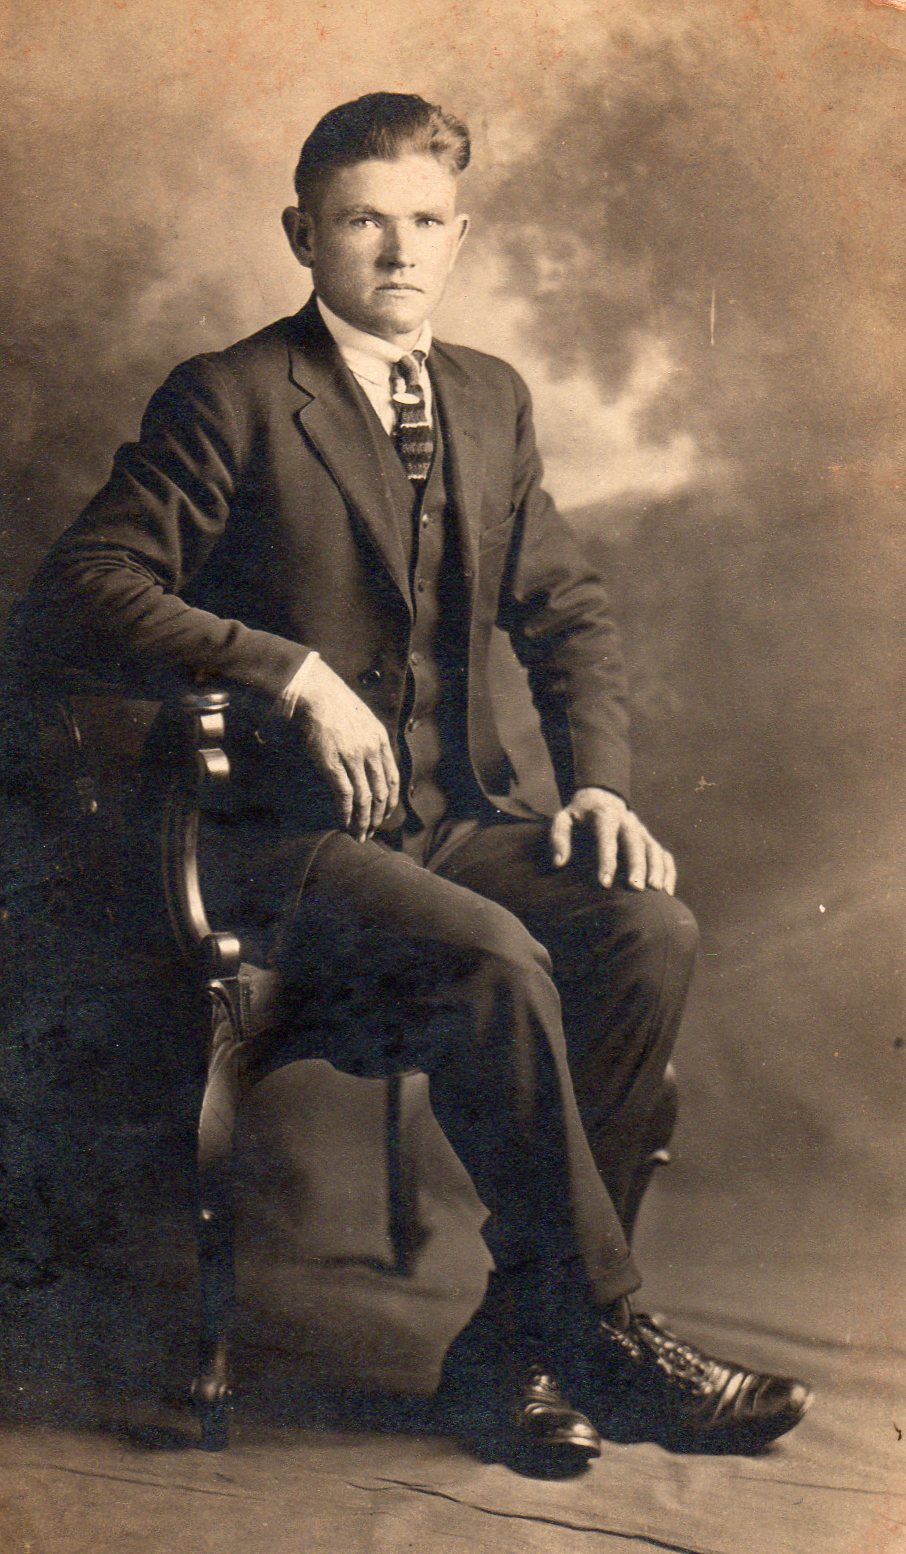 Haskell Berry Yancey